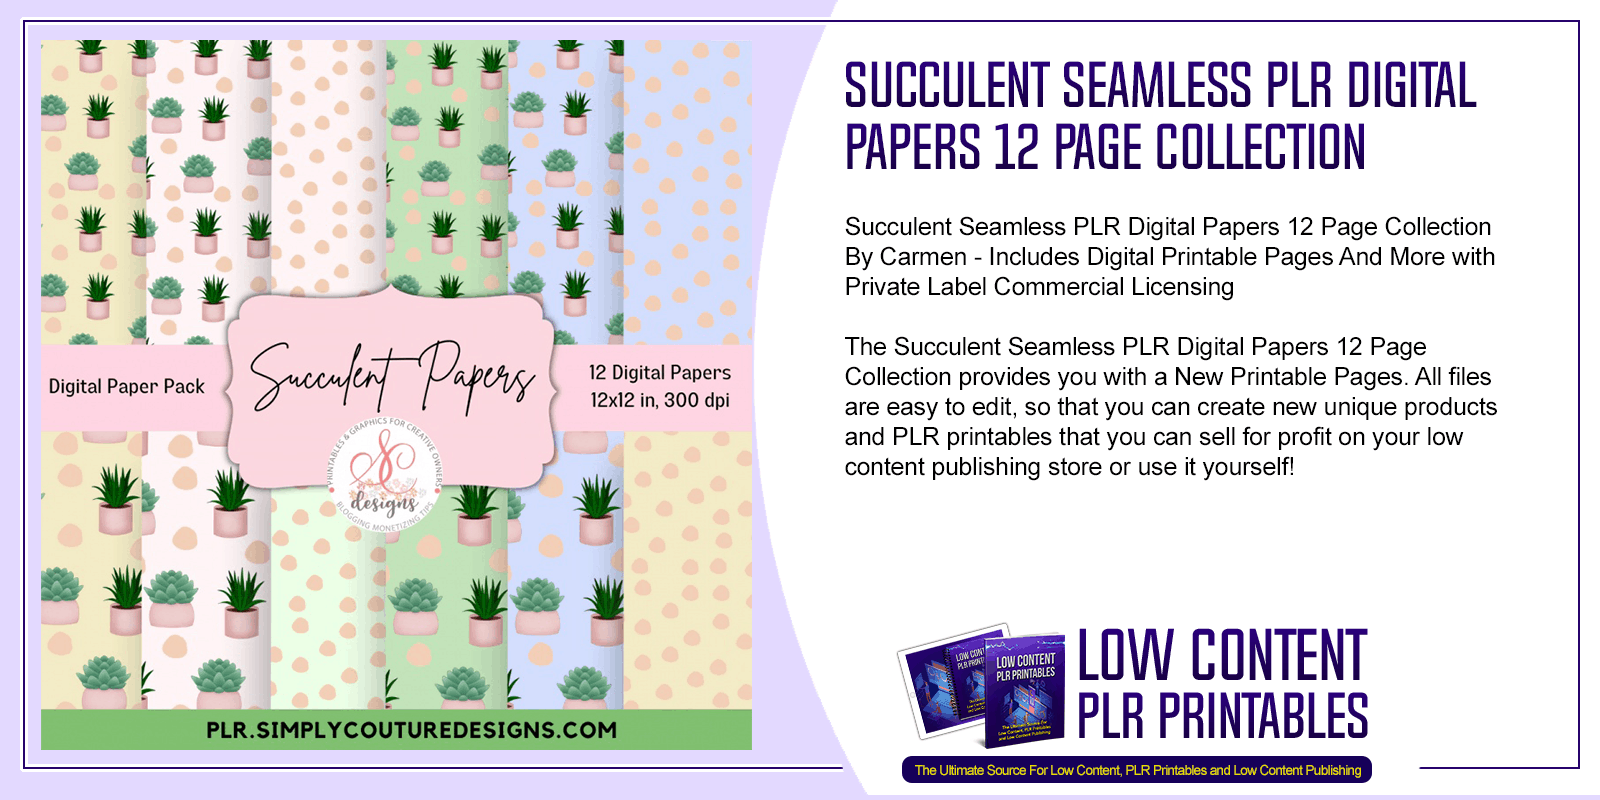 Succulent Seamless PLR Digital Papers 12 Page Collection